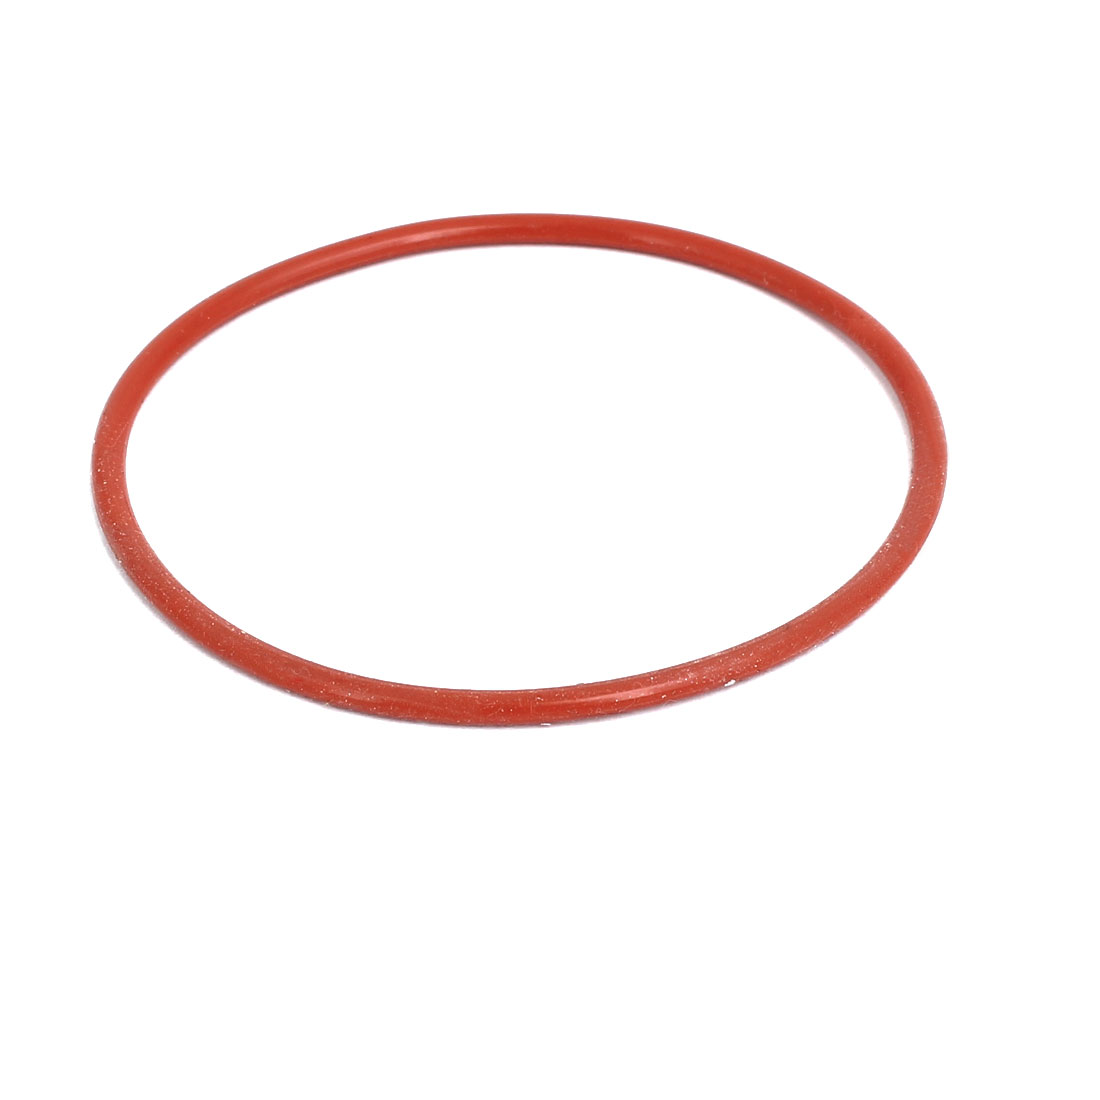 Plastic O-Ring Valve Gasket Red for 550W/750W Air Compressor